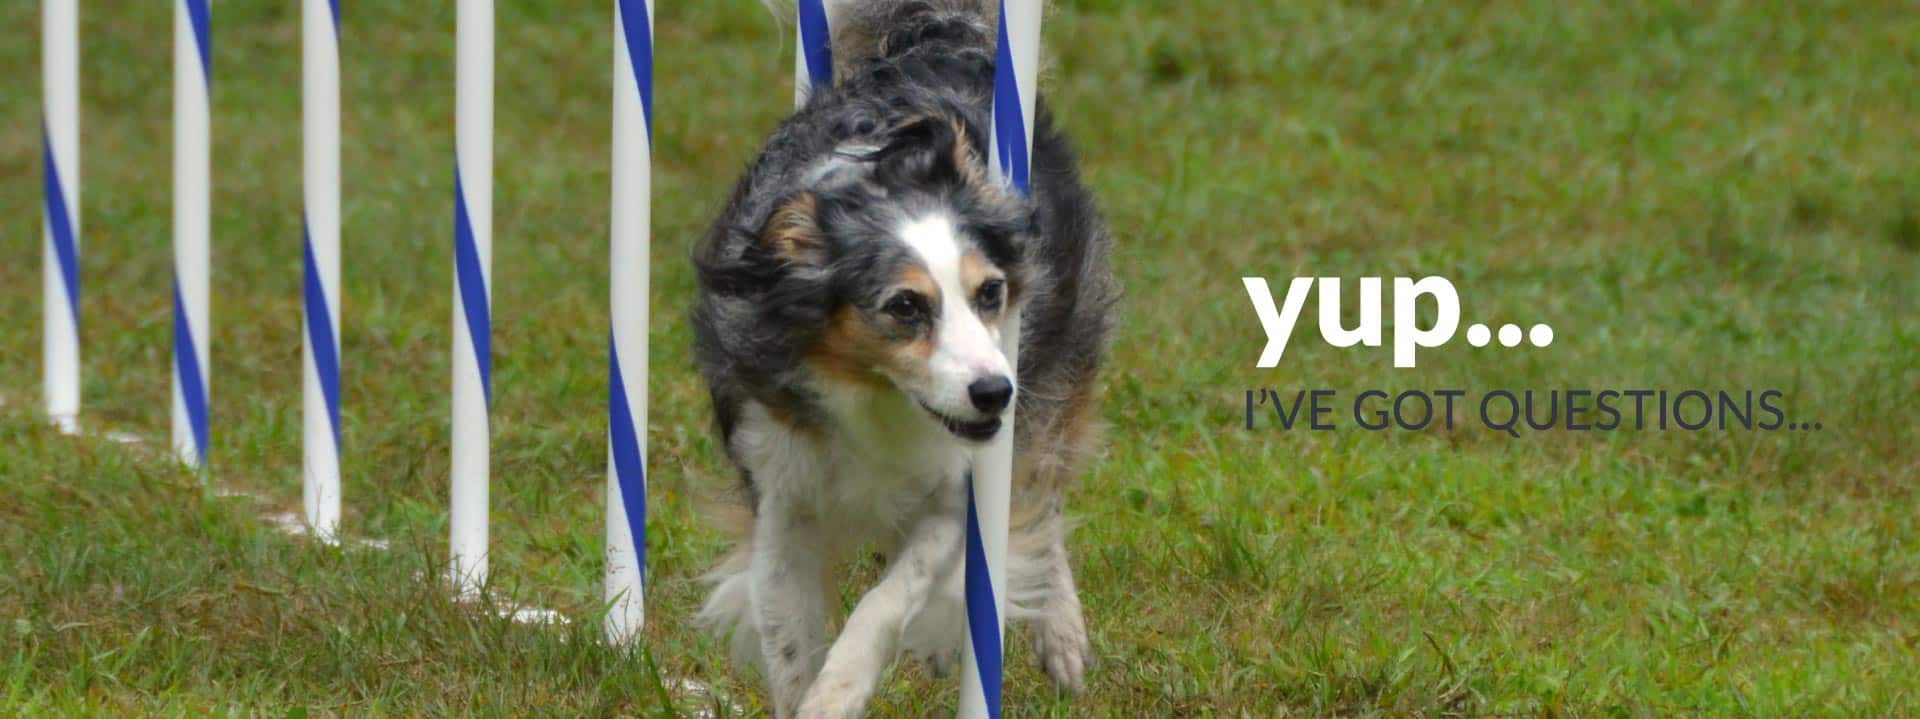 Dog Competition Training Courses - Sport, Agility And Obedience